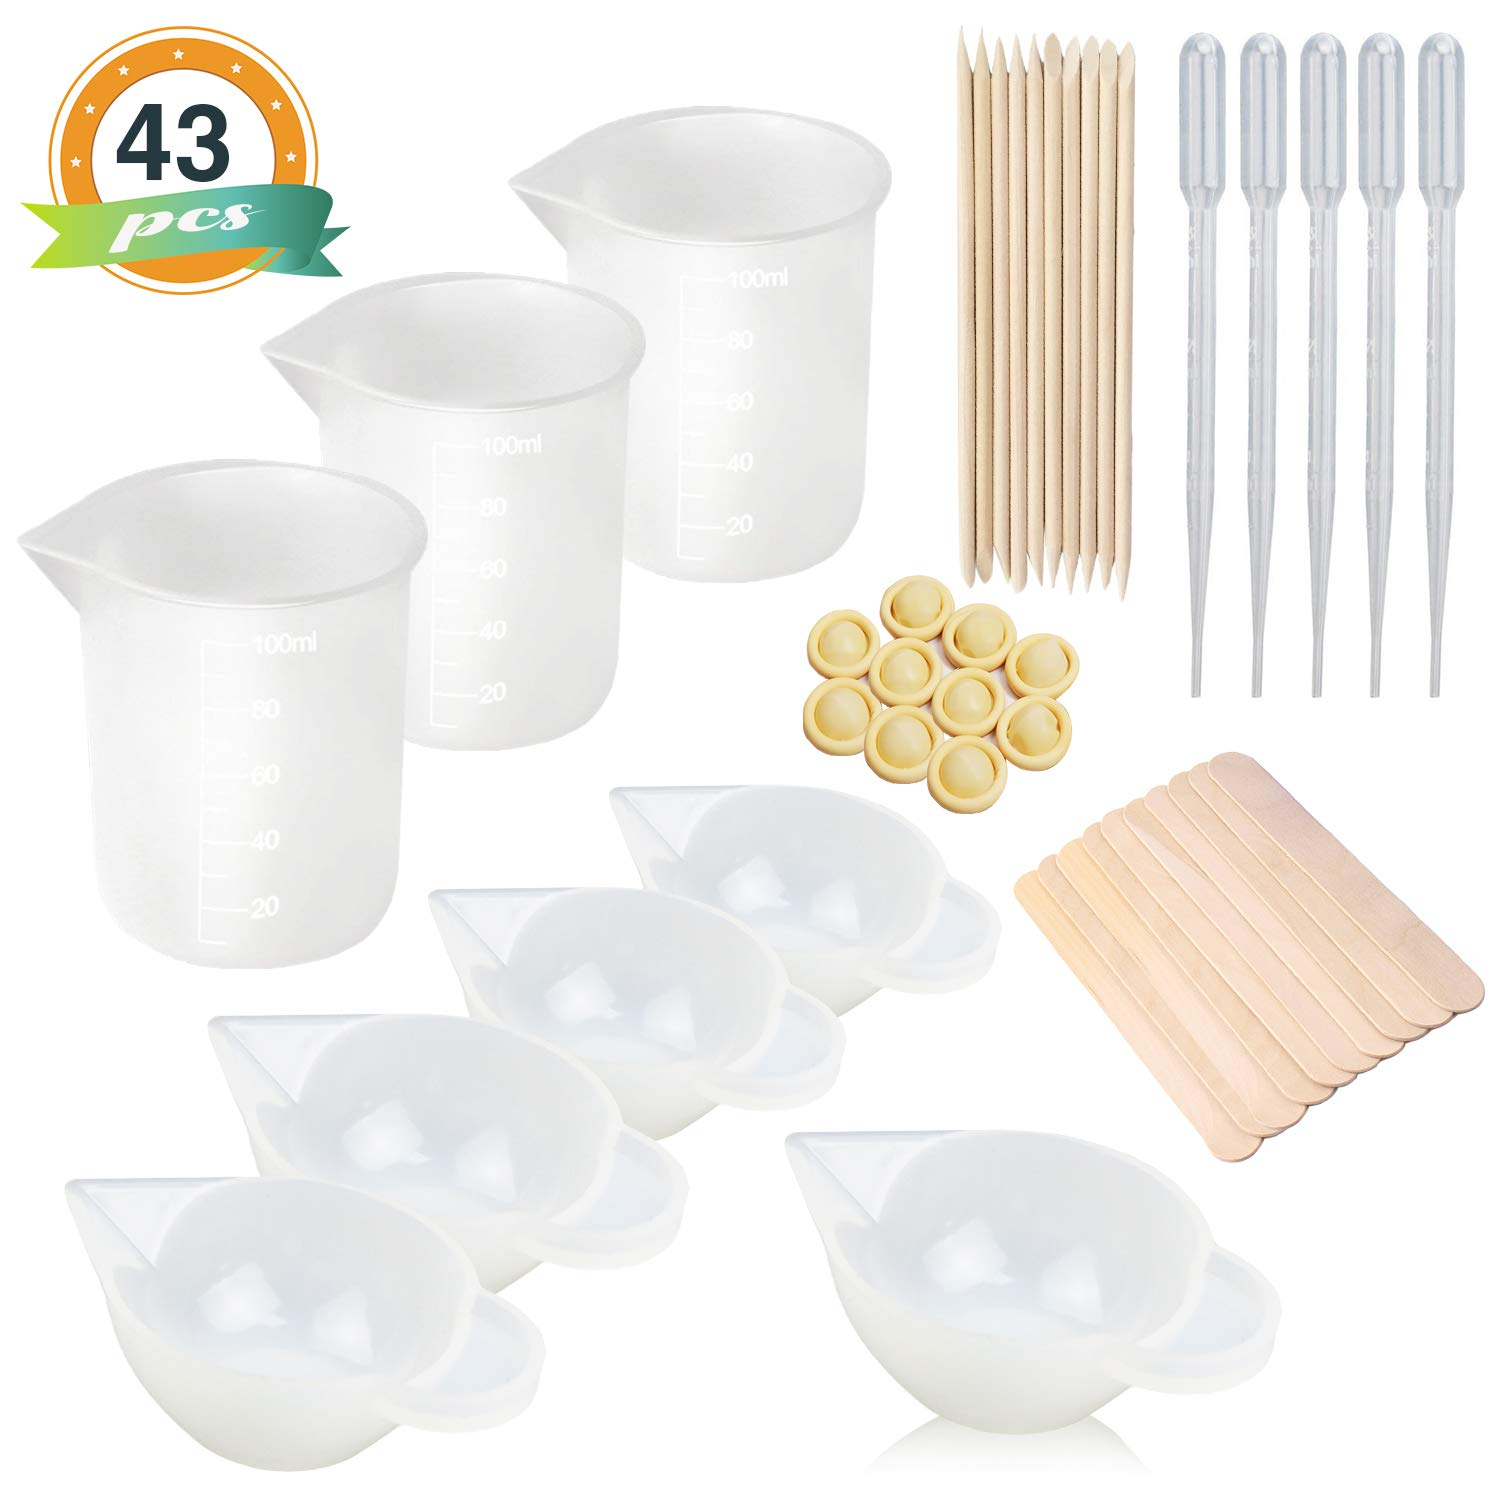 8PCS Silicone Measuring Cups for Resin 100ml 10ml, Nonstick Silicone Mixing Cups, Epoxy Resin Cups, Glue Tools Sticks Pipettes Finger Cots for Epoxy Resin, Casting Molds, Slime, Art, Waxing,Cup Turner by LET'S RESIN